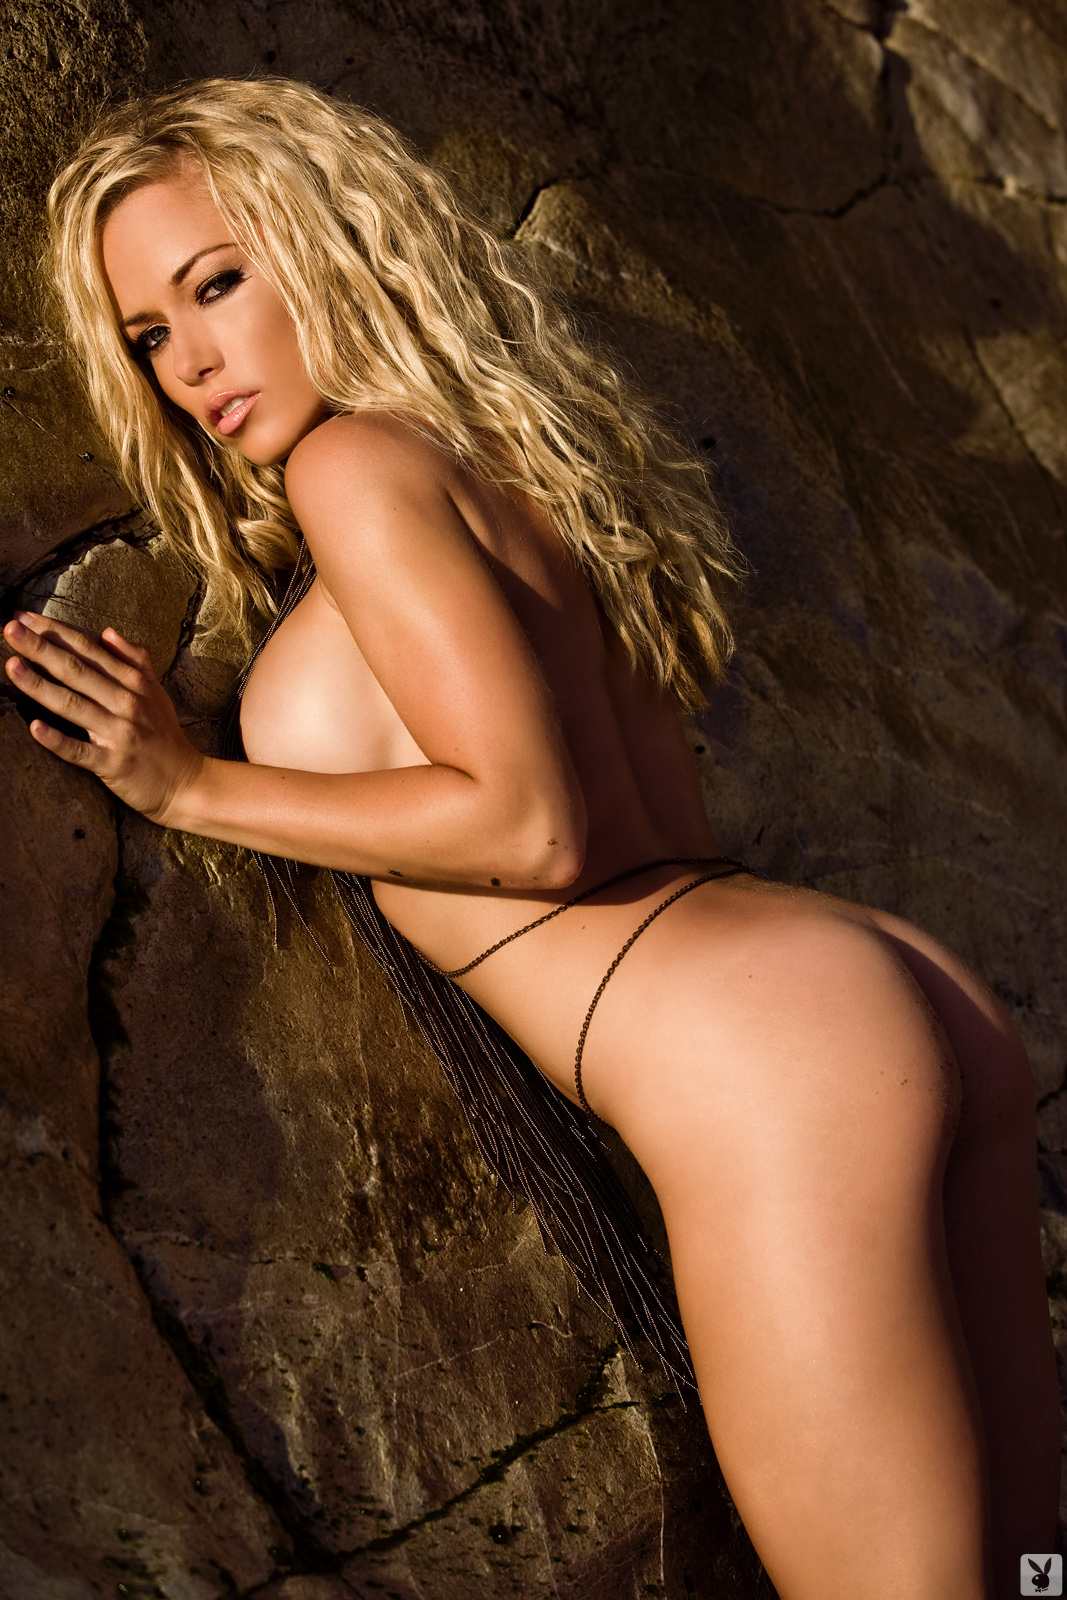 playboy kendra nude pictures